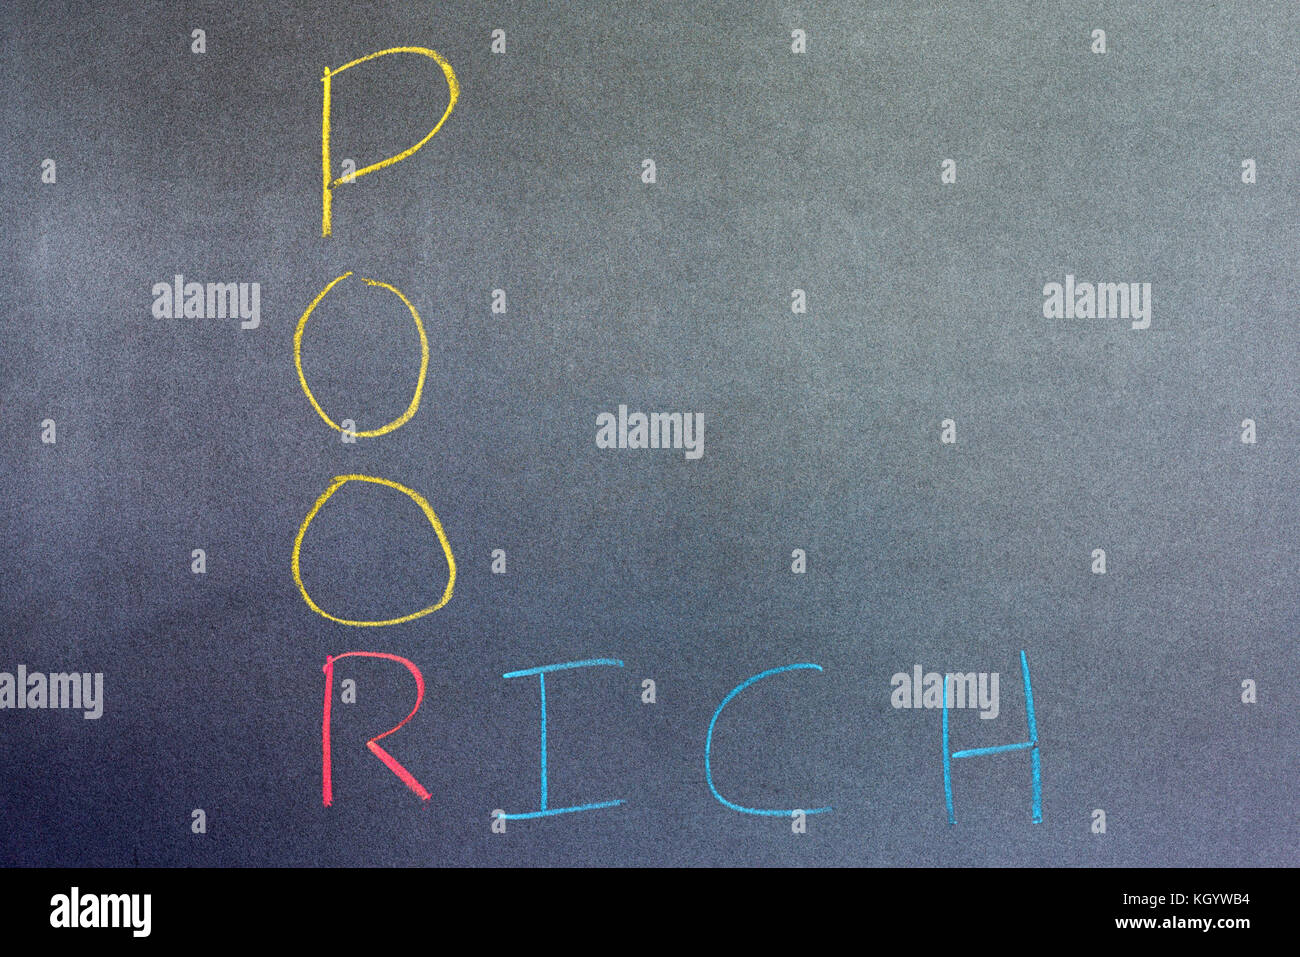 The words Poor and Rich written on chalkboard background. - Stock Image